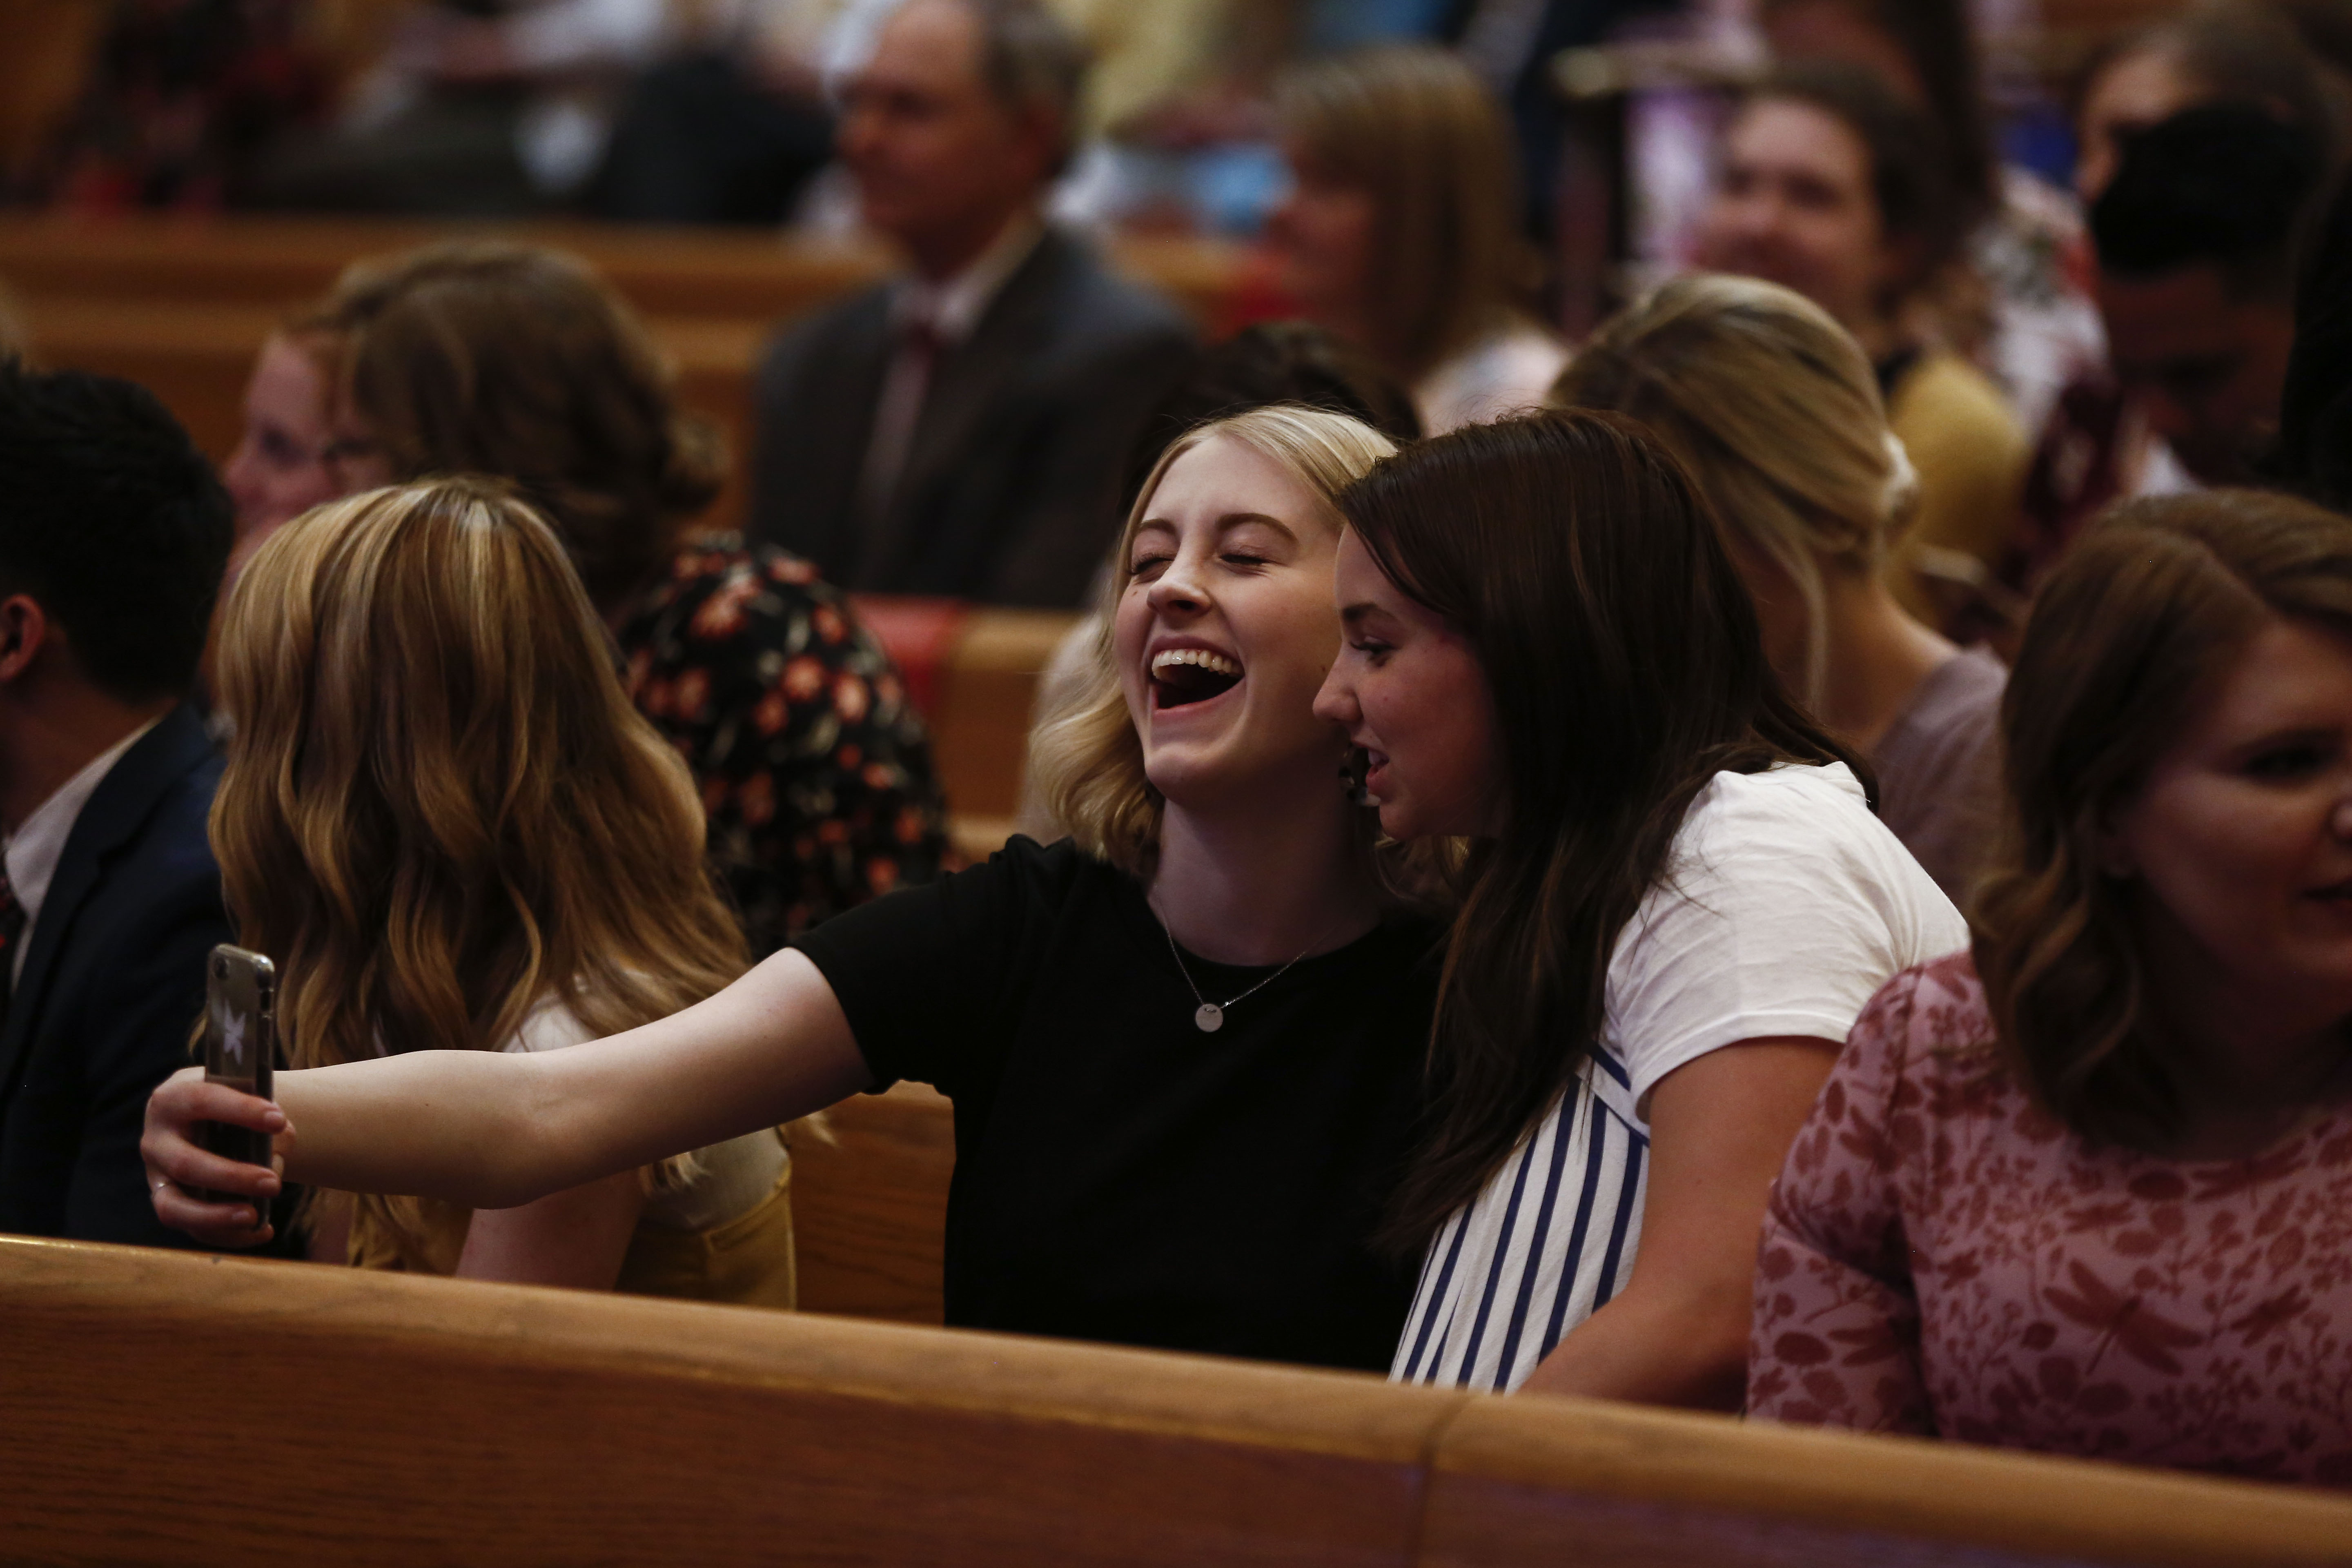 Isabelle Purdie and Maddie Barkdull take a selfie before the Worldwide Devotional for Young Adults at the Salt Lake Tabernacle in Salt Lake City on Sunday, May 5, 2019.